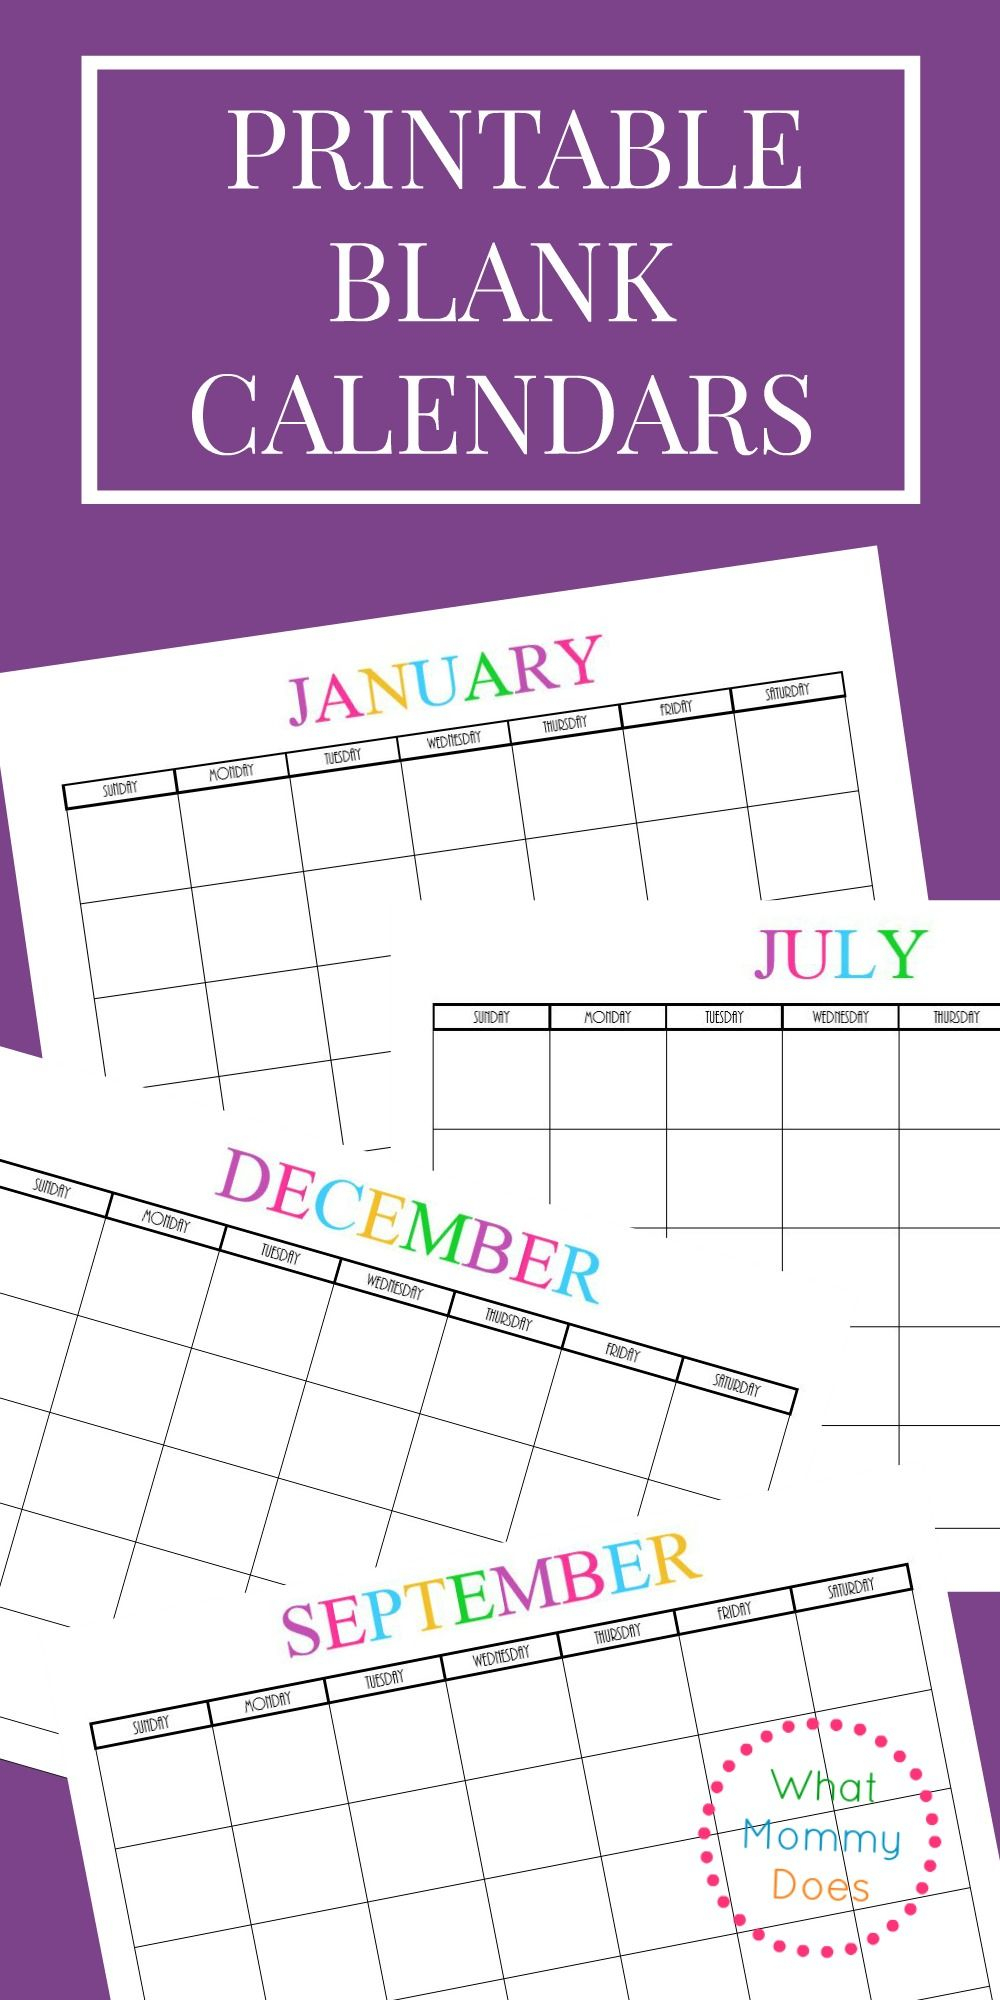 Free Printable Blank Monthly Calendars – 2018, 2019, 2020, 2021+ with 2020 Free Printable 8.5 X11 Monthly Calendars